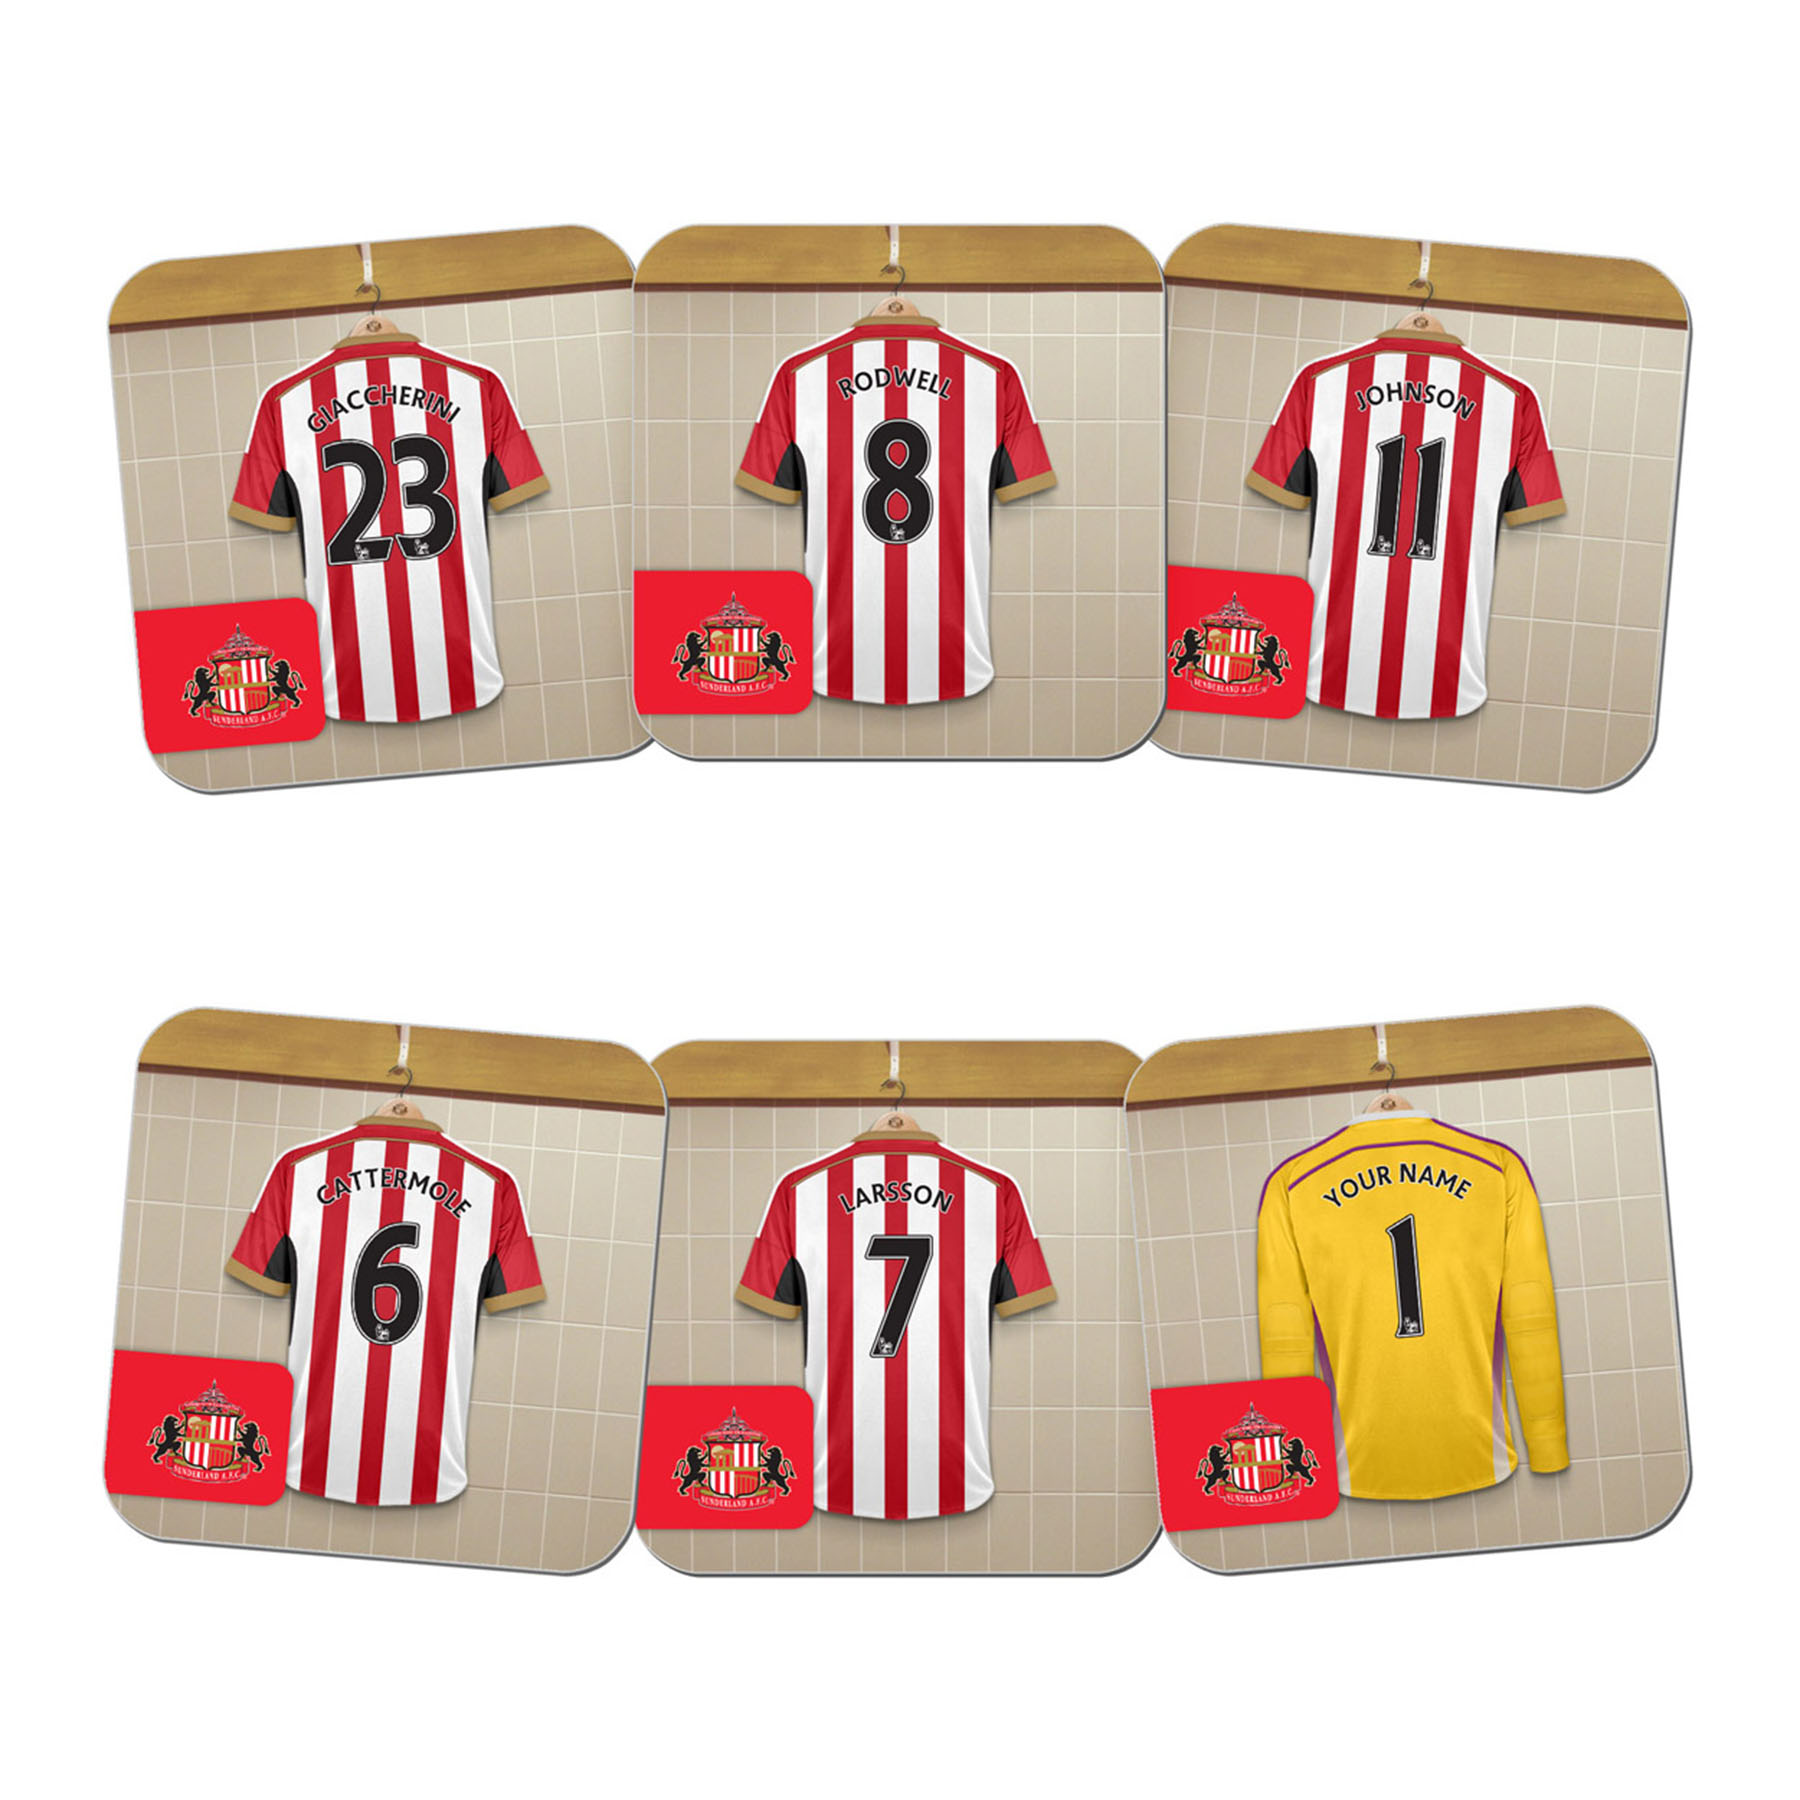 Sunderland Personalised Goalkeeper Dressing Room Coasters 6 Pack